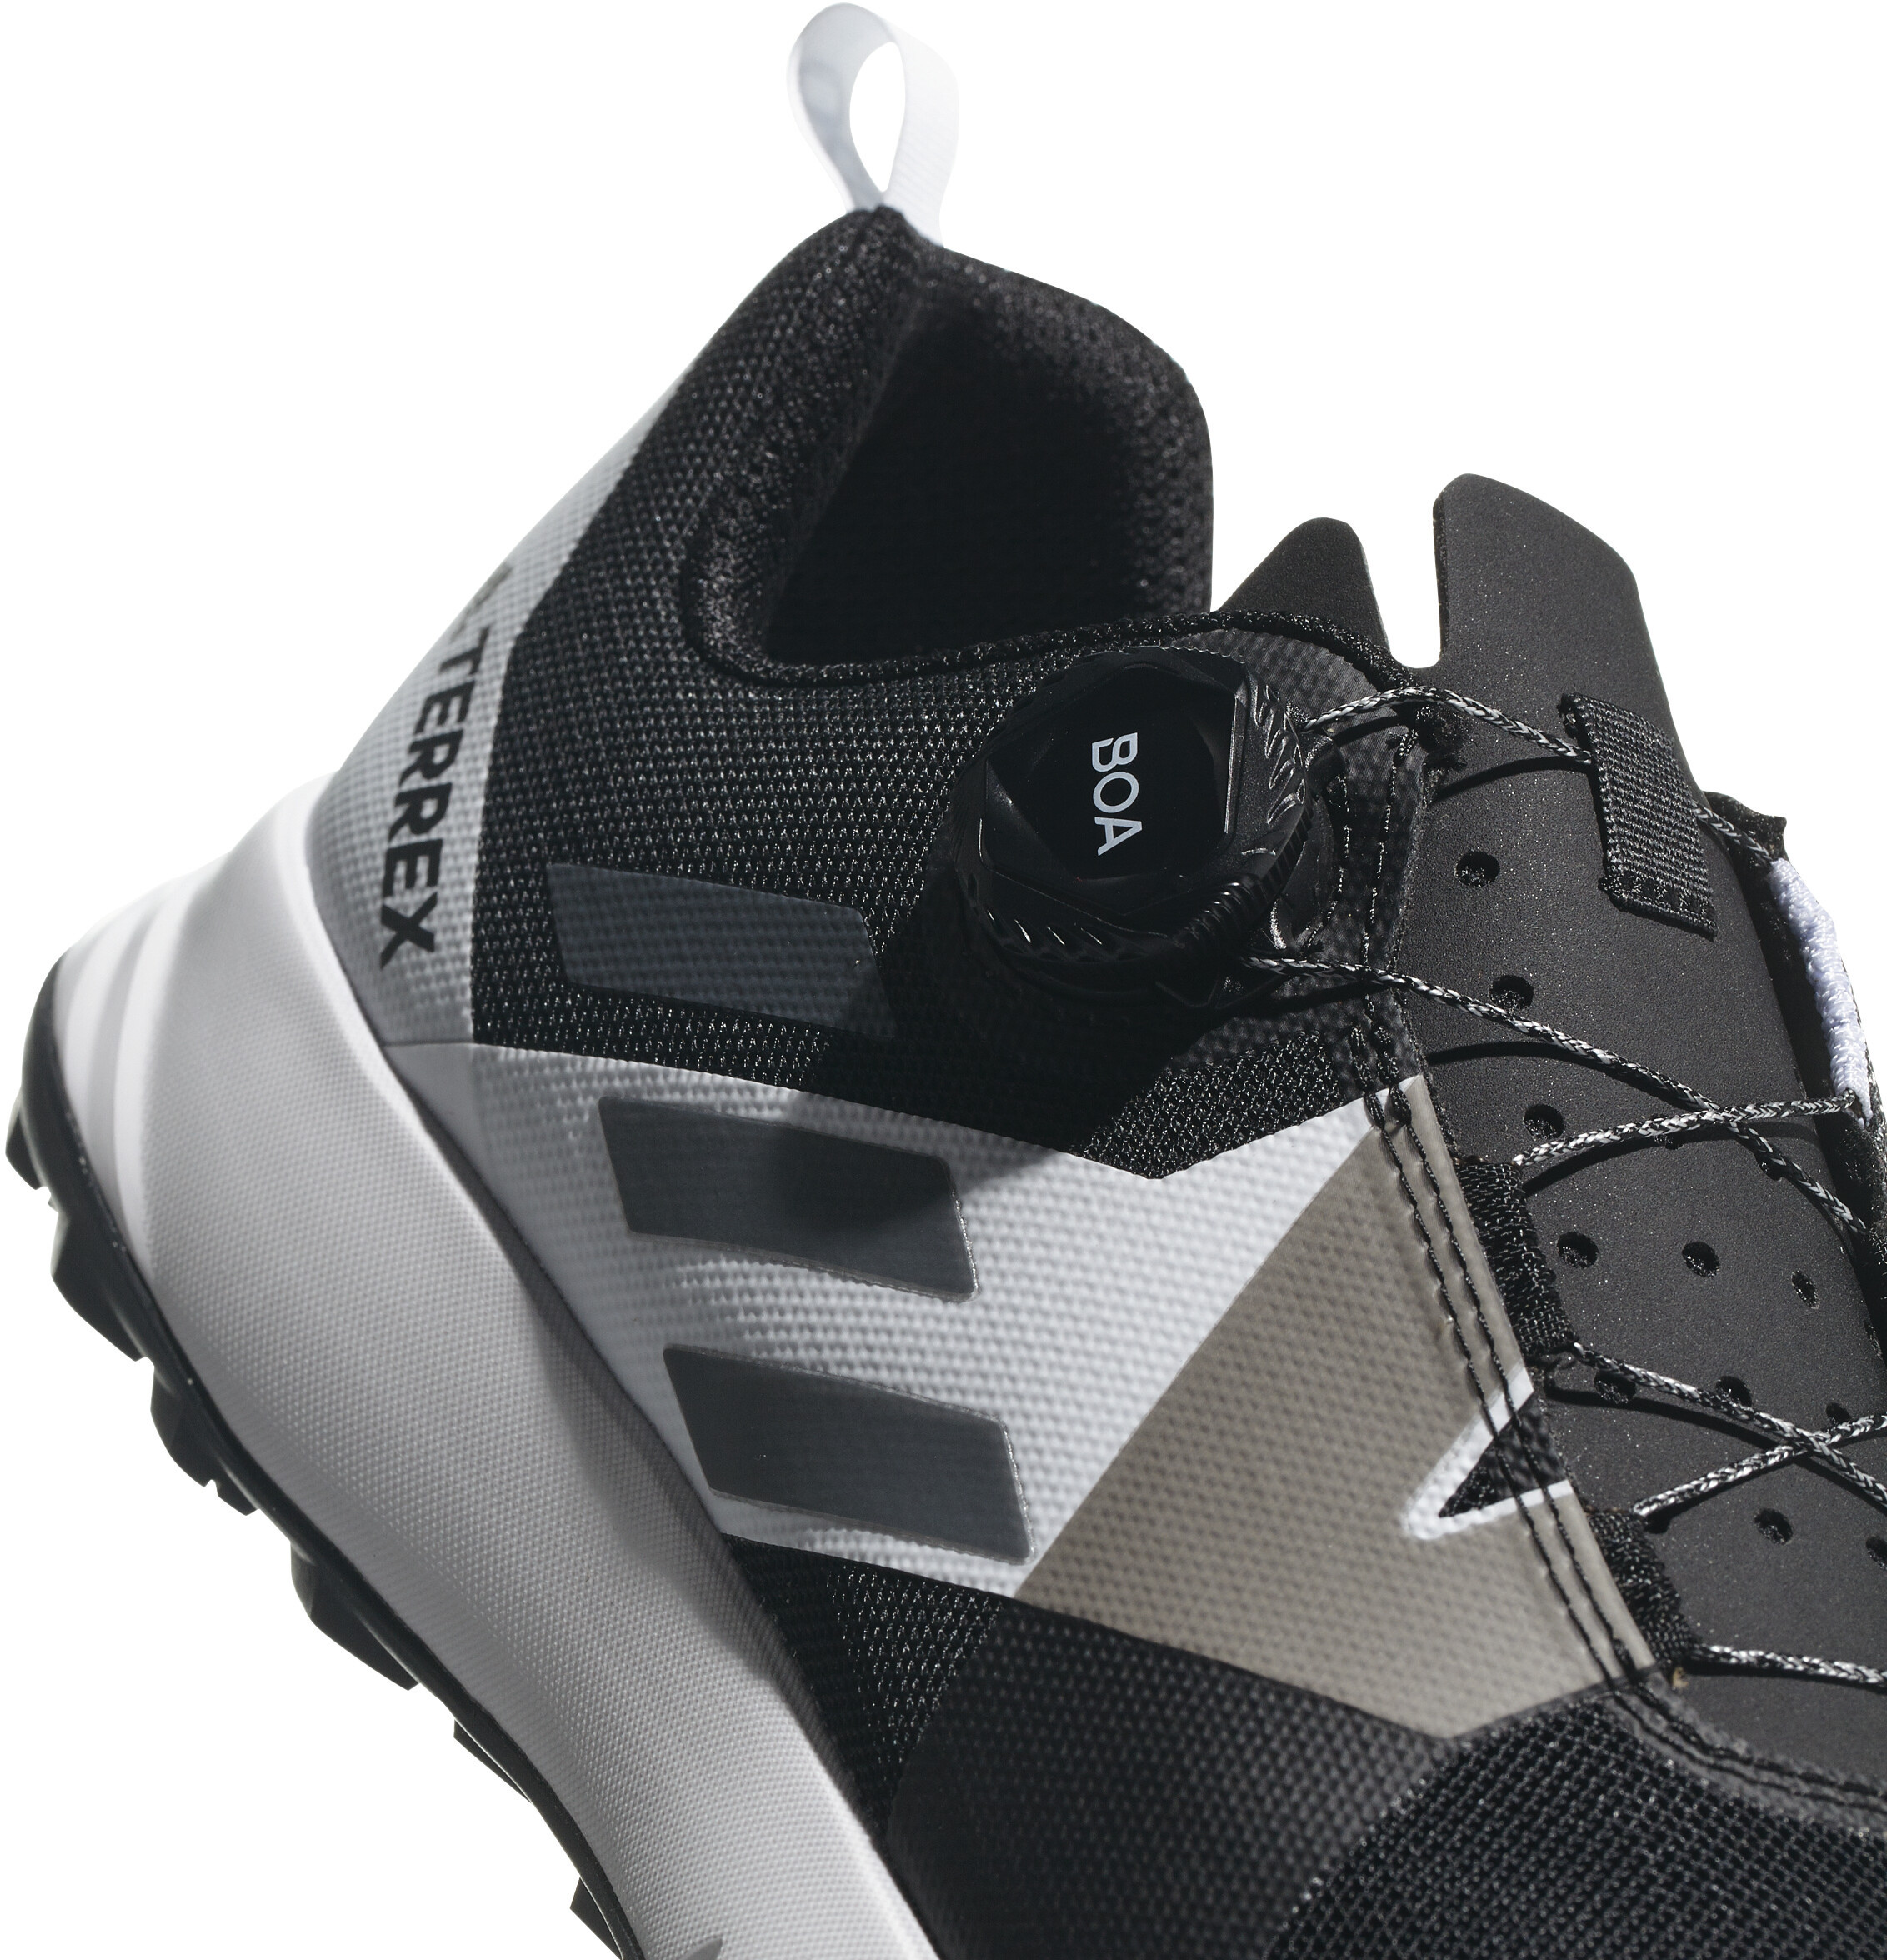 premium selection 546c1 d27c7 adidas TERREX Two Boa - Chaussures running Homme - blanc noir